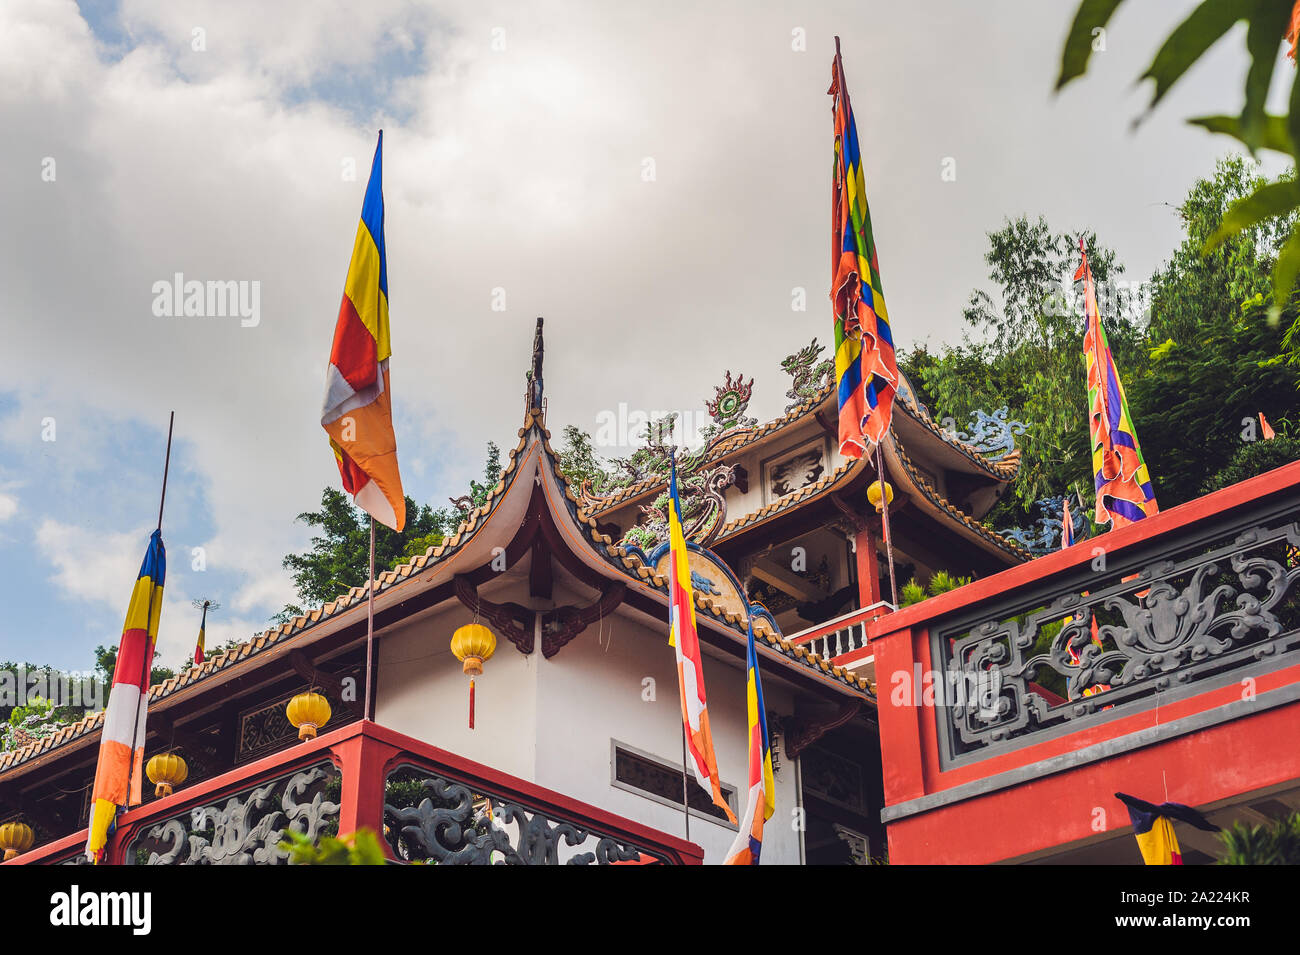 Buddhist temple in Vietnam Nha Trang, Asian architecture concept Stock Photo